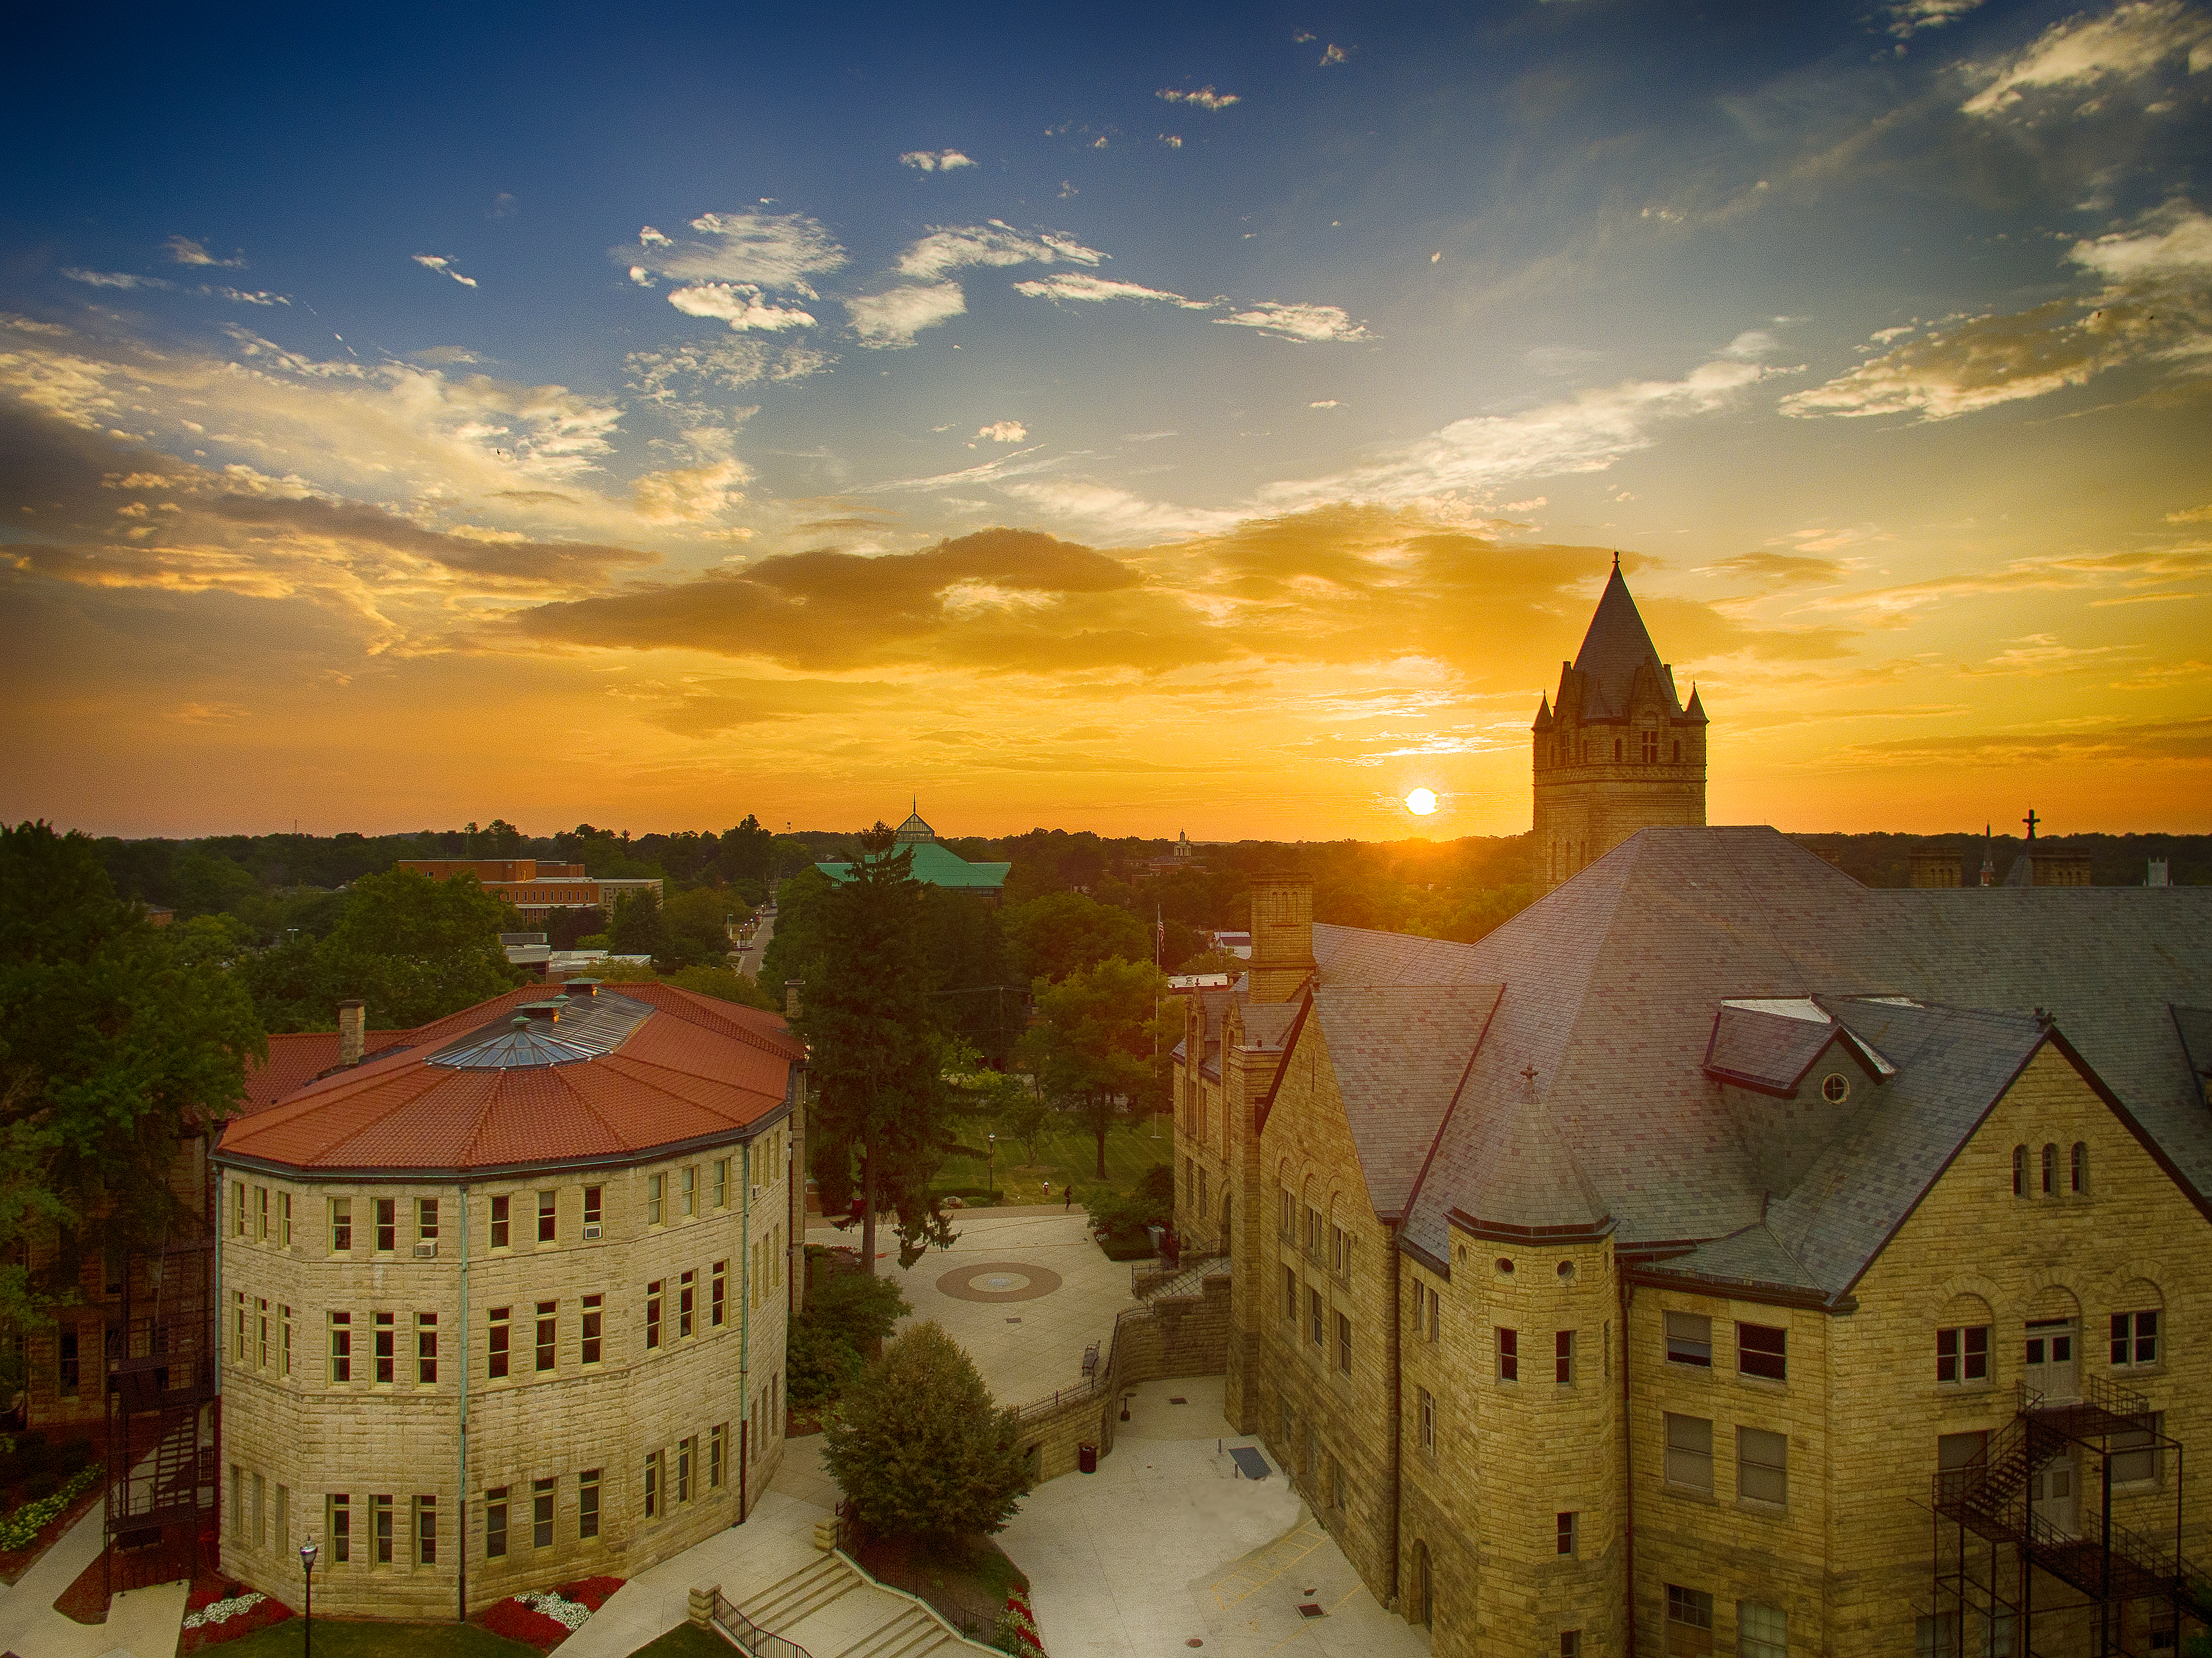 Owu sunset by brian rellinger